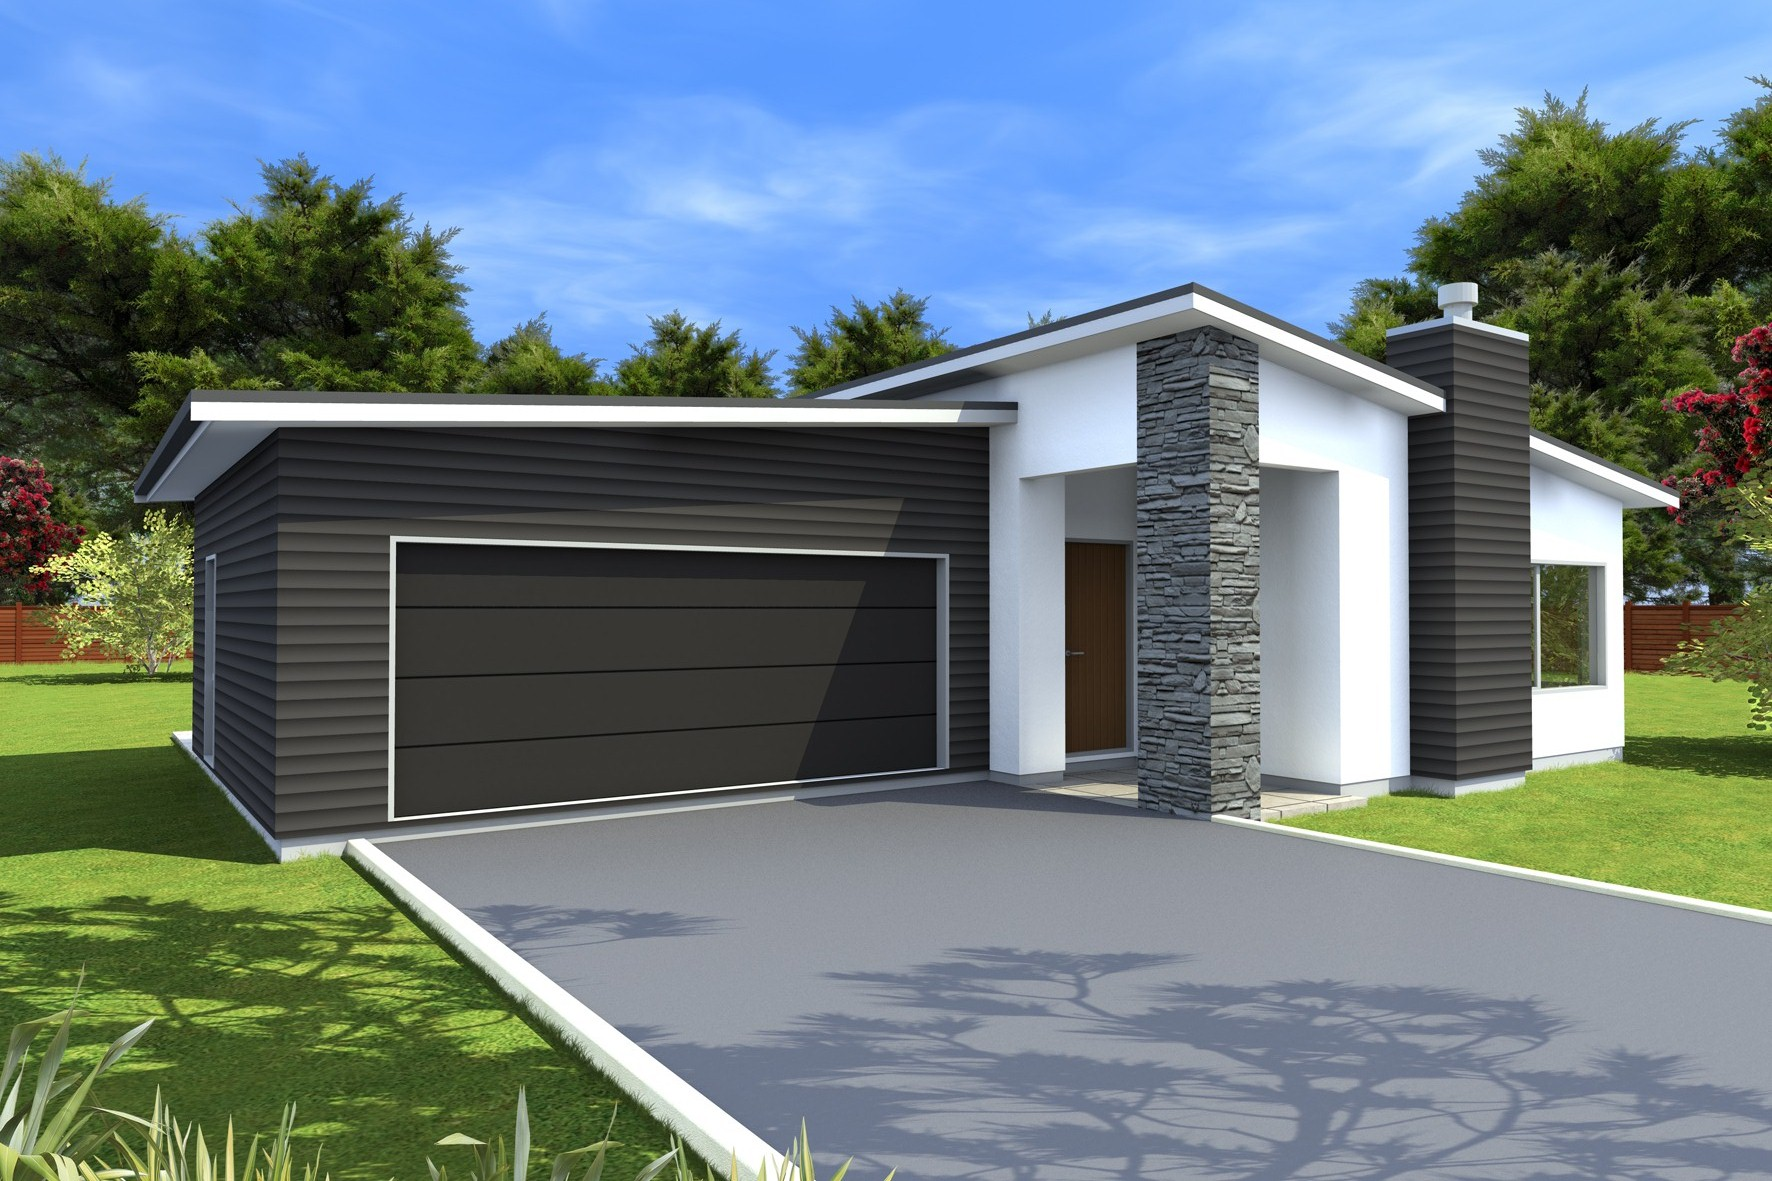 Standard house plans nz house plans for Standard home plans